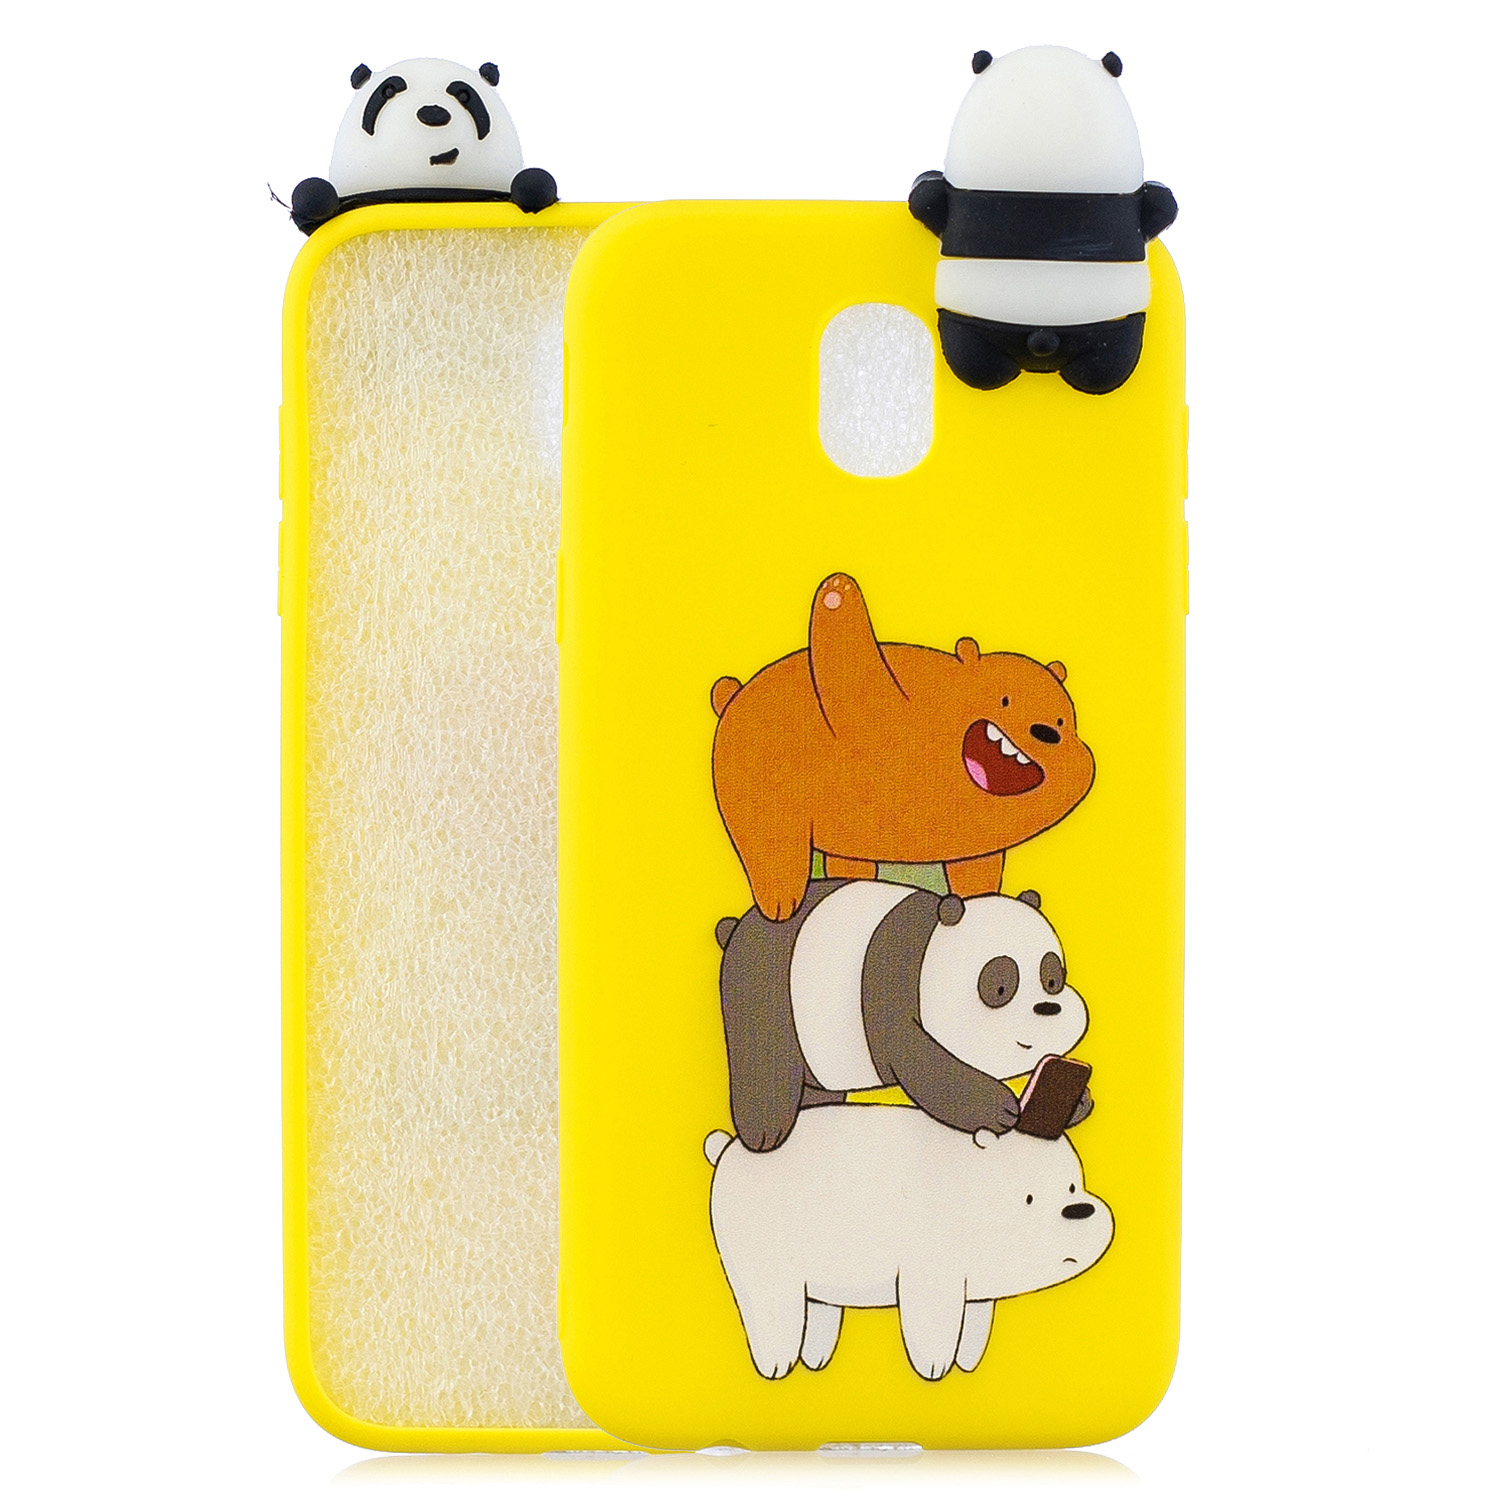 For Redmi 8A 3D Cartoon Painting Back Cover Soft TPU Mobile Phone Case Shell Striped bear